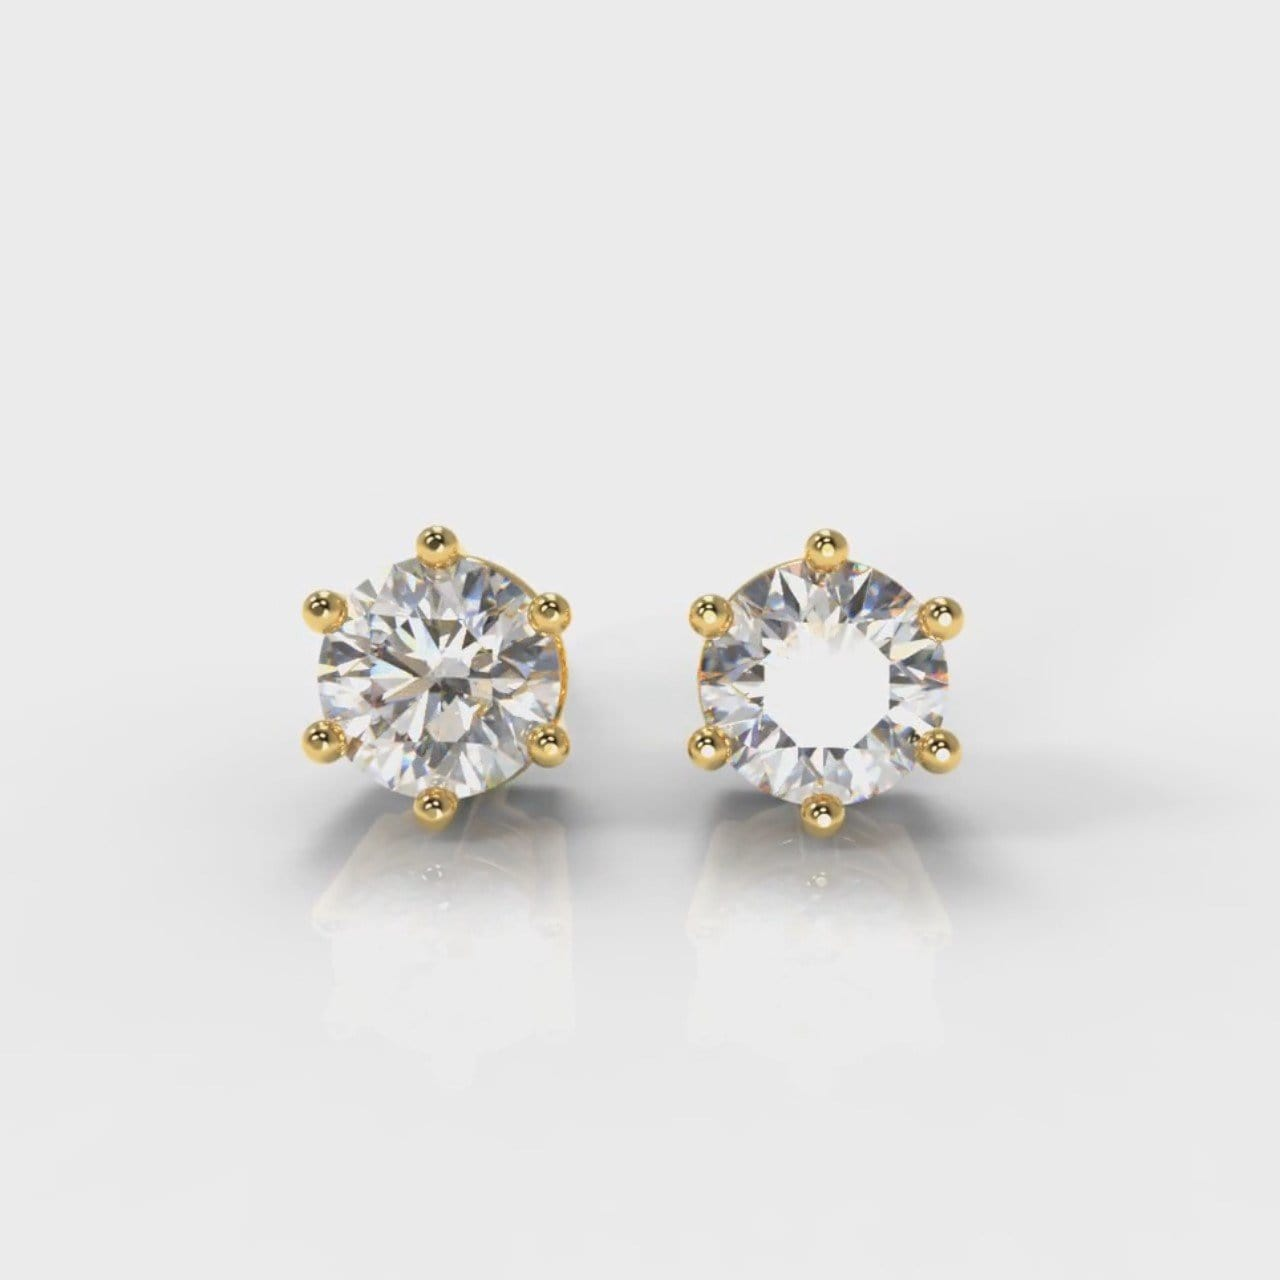 Six Claw Diamond Stud Earrings (Lab Grown Diamonds) - Yellow Gold